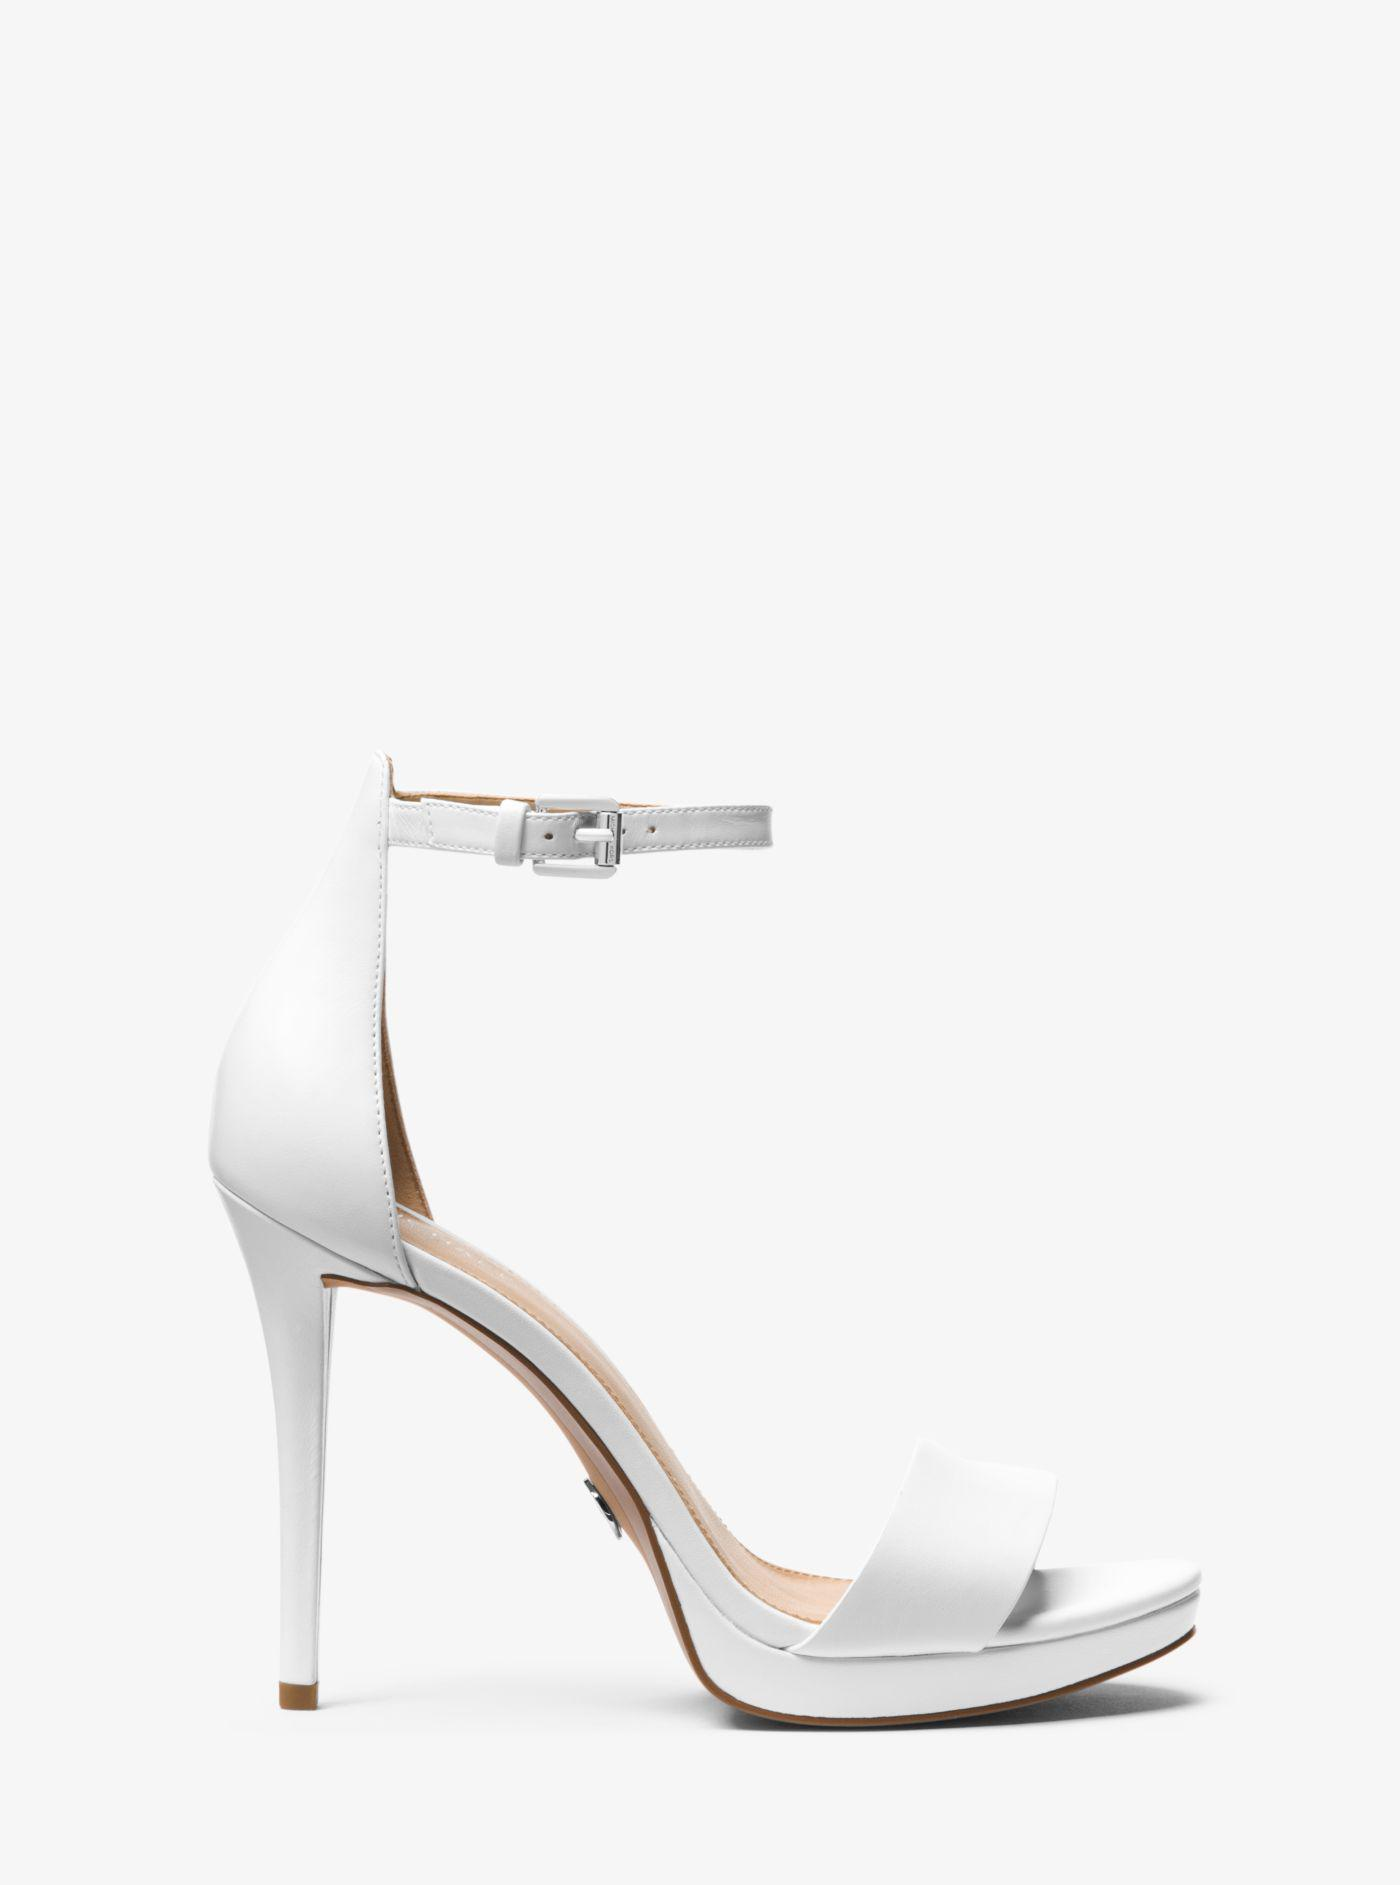 c56207891af951 Michael Kors - White Hutton Leather Sandal - Lyst. View fullscreen